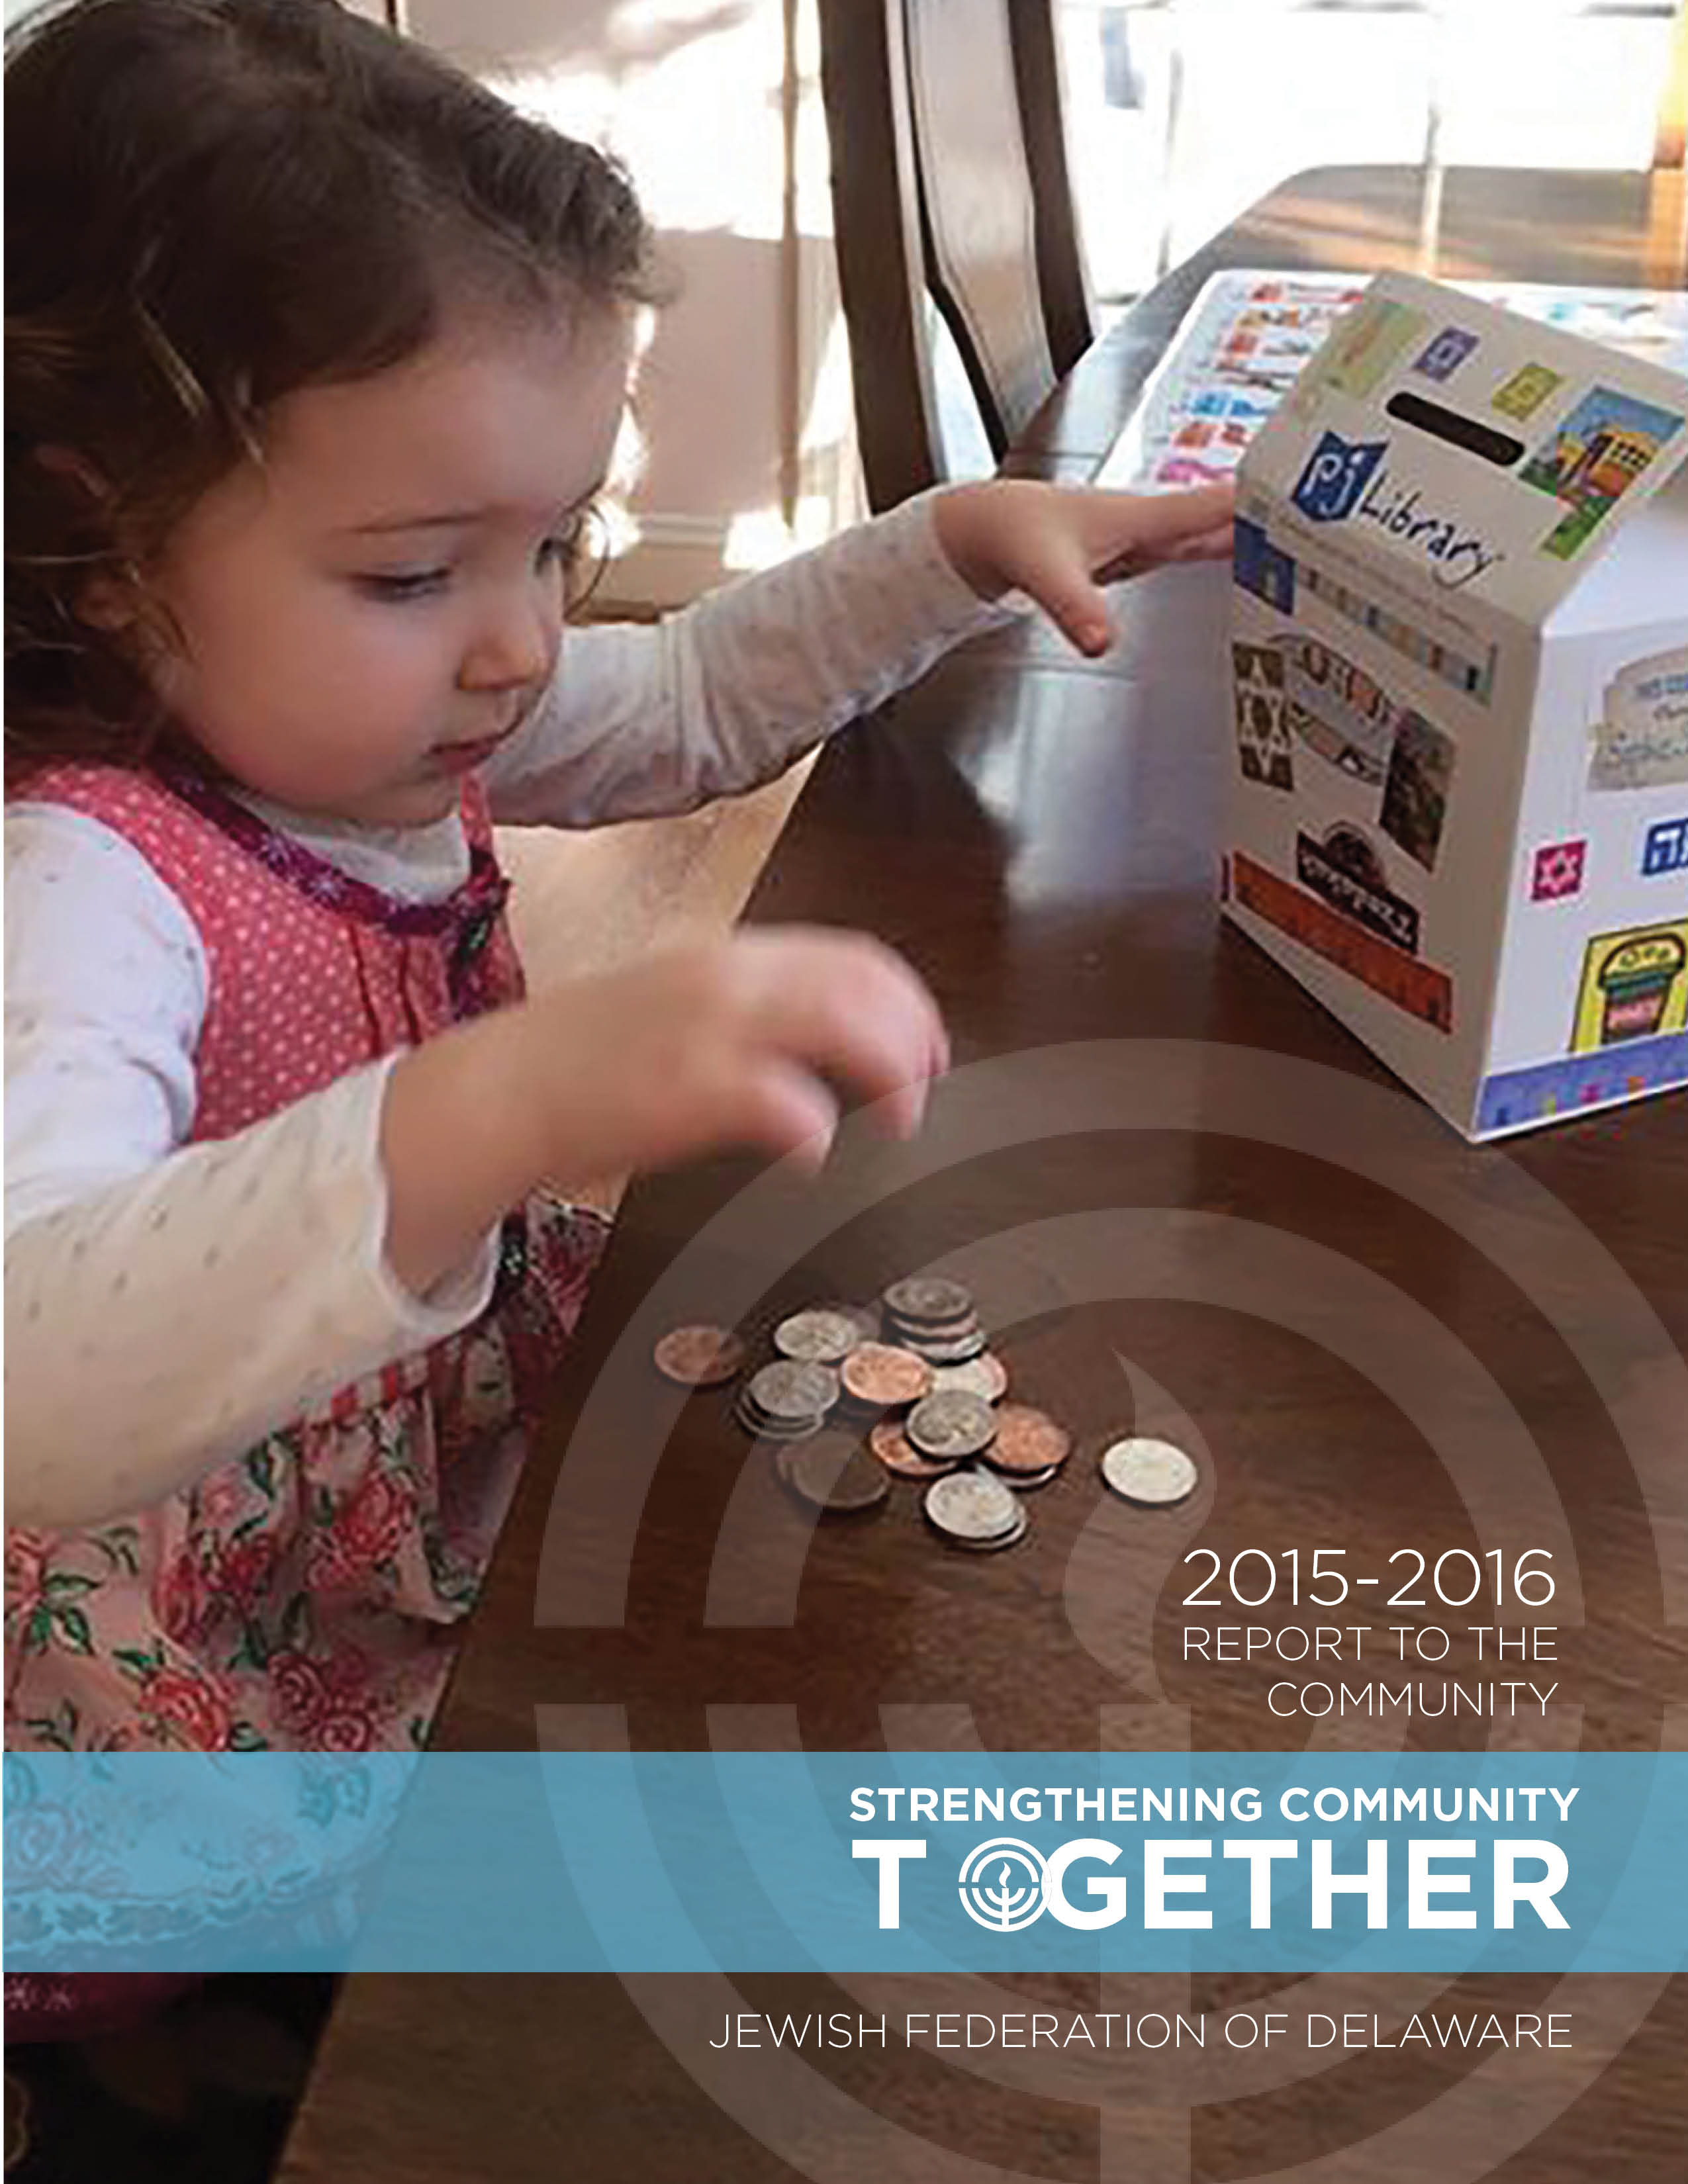 Click HERE to view the 2015-2016 Report to the Community